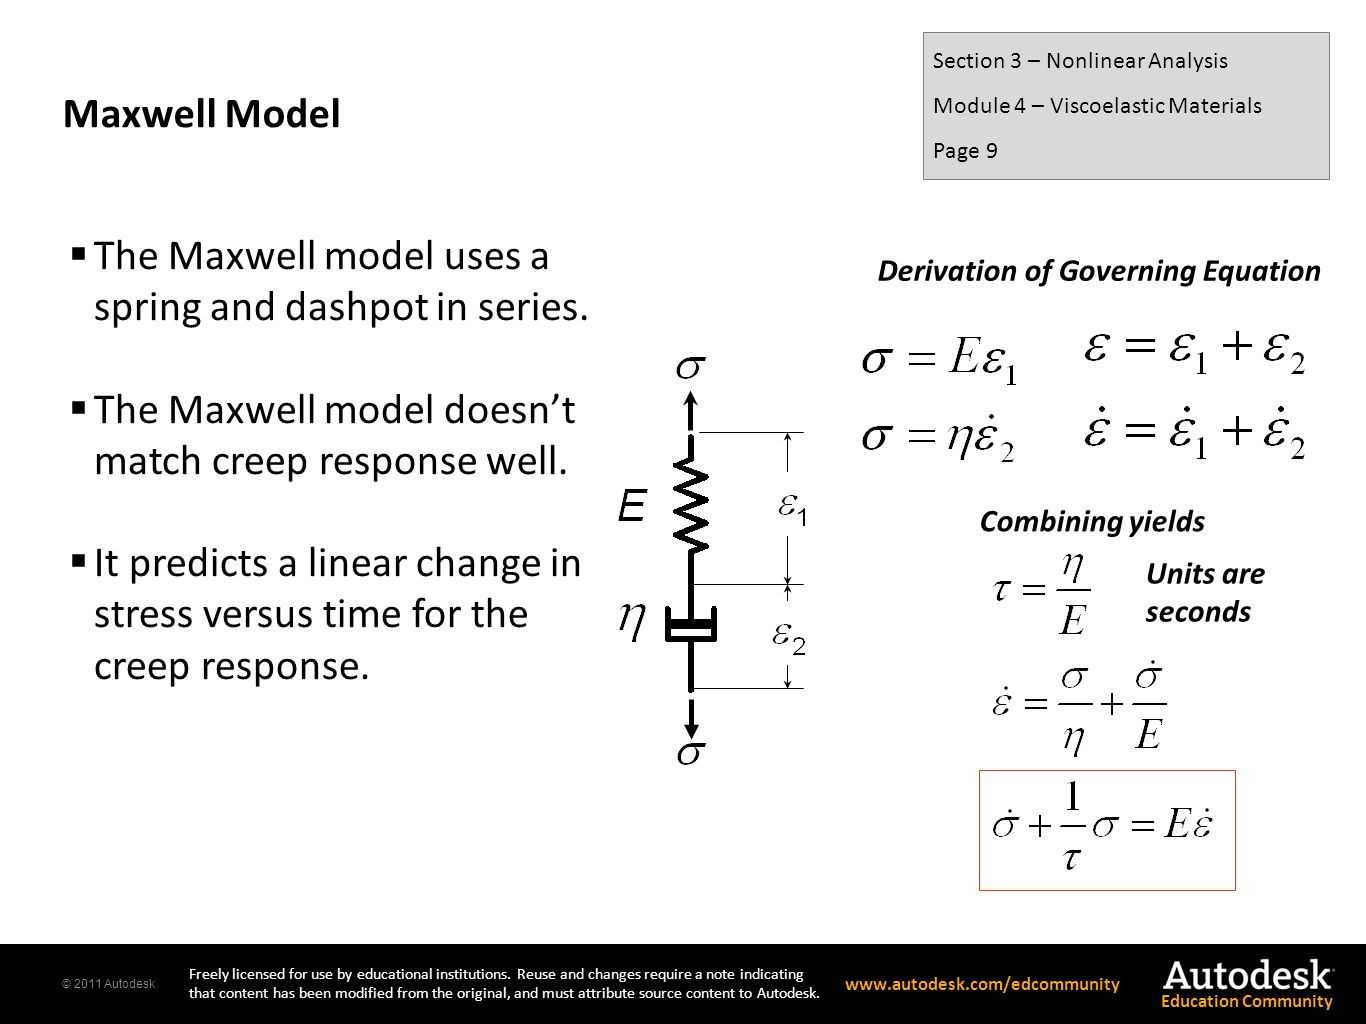 The Maxwell model uses a spring and dashpot in series.